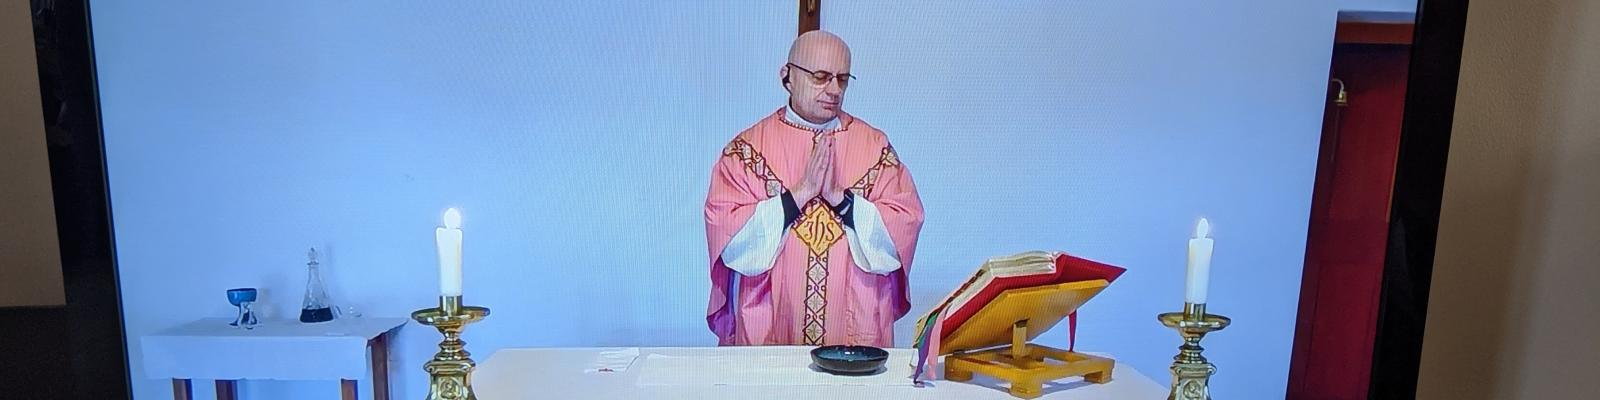 Fr Zbigniew Live streaming mass